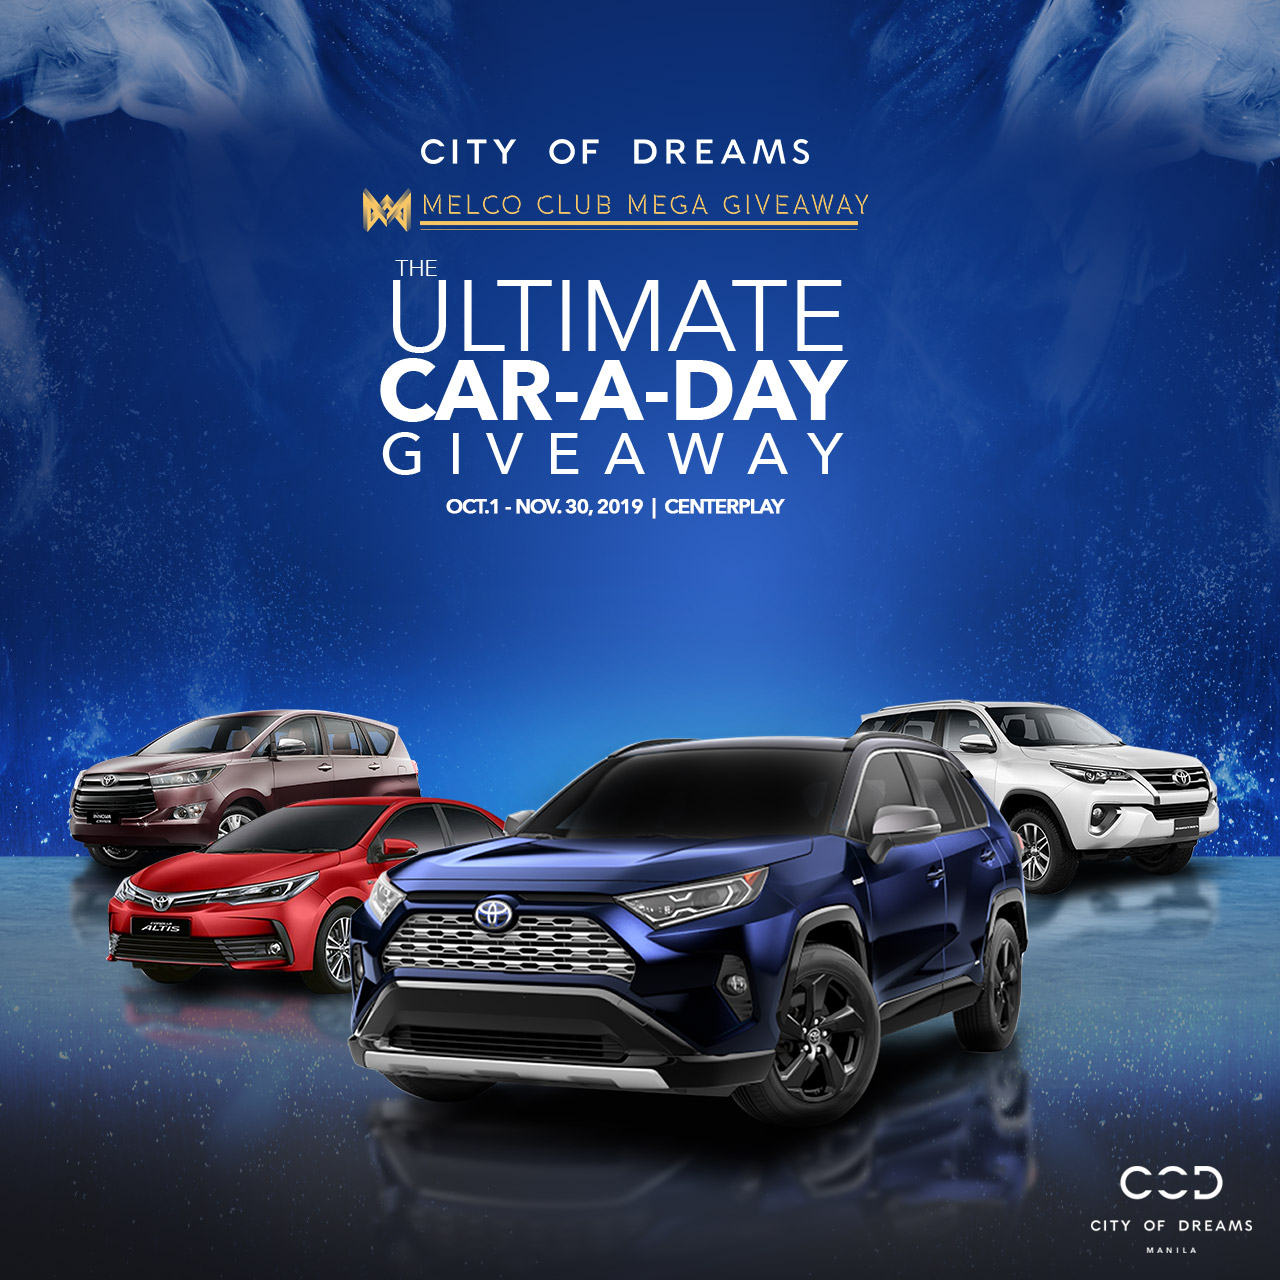 Brand New Toyota Car Up For Grabs In City Of Dreams Manila S Ultimate Car A Day Giveaway Promo Orange Magazine